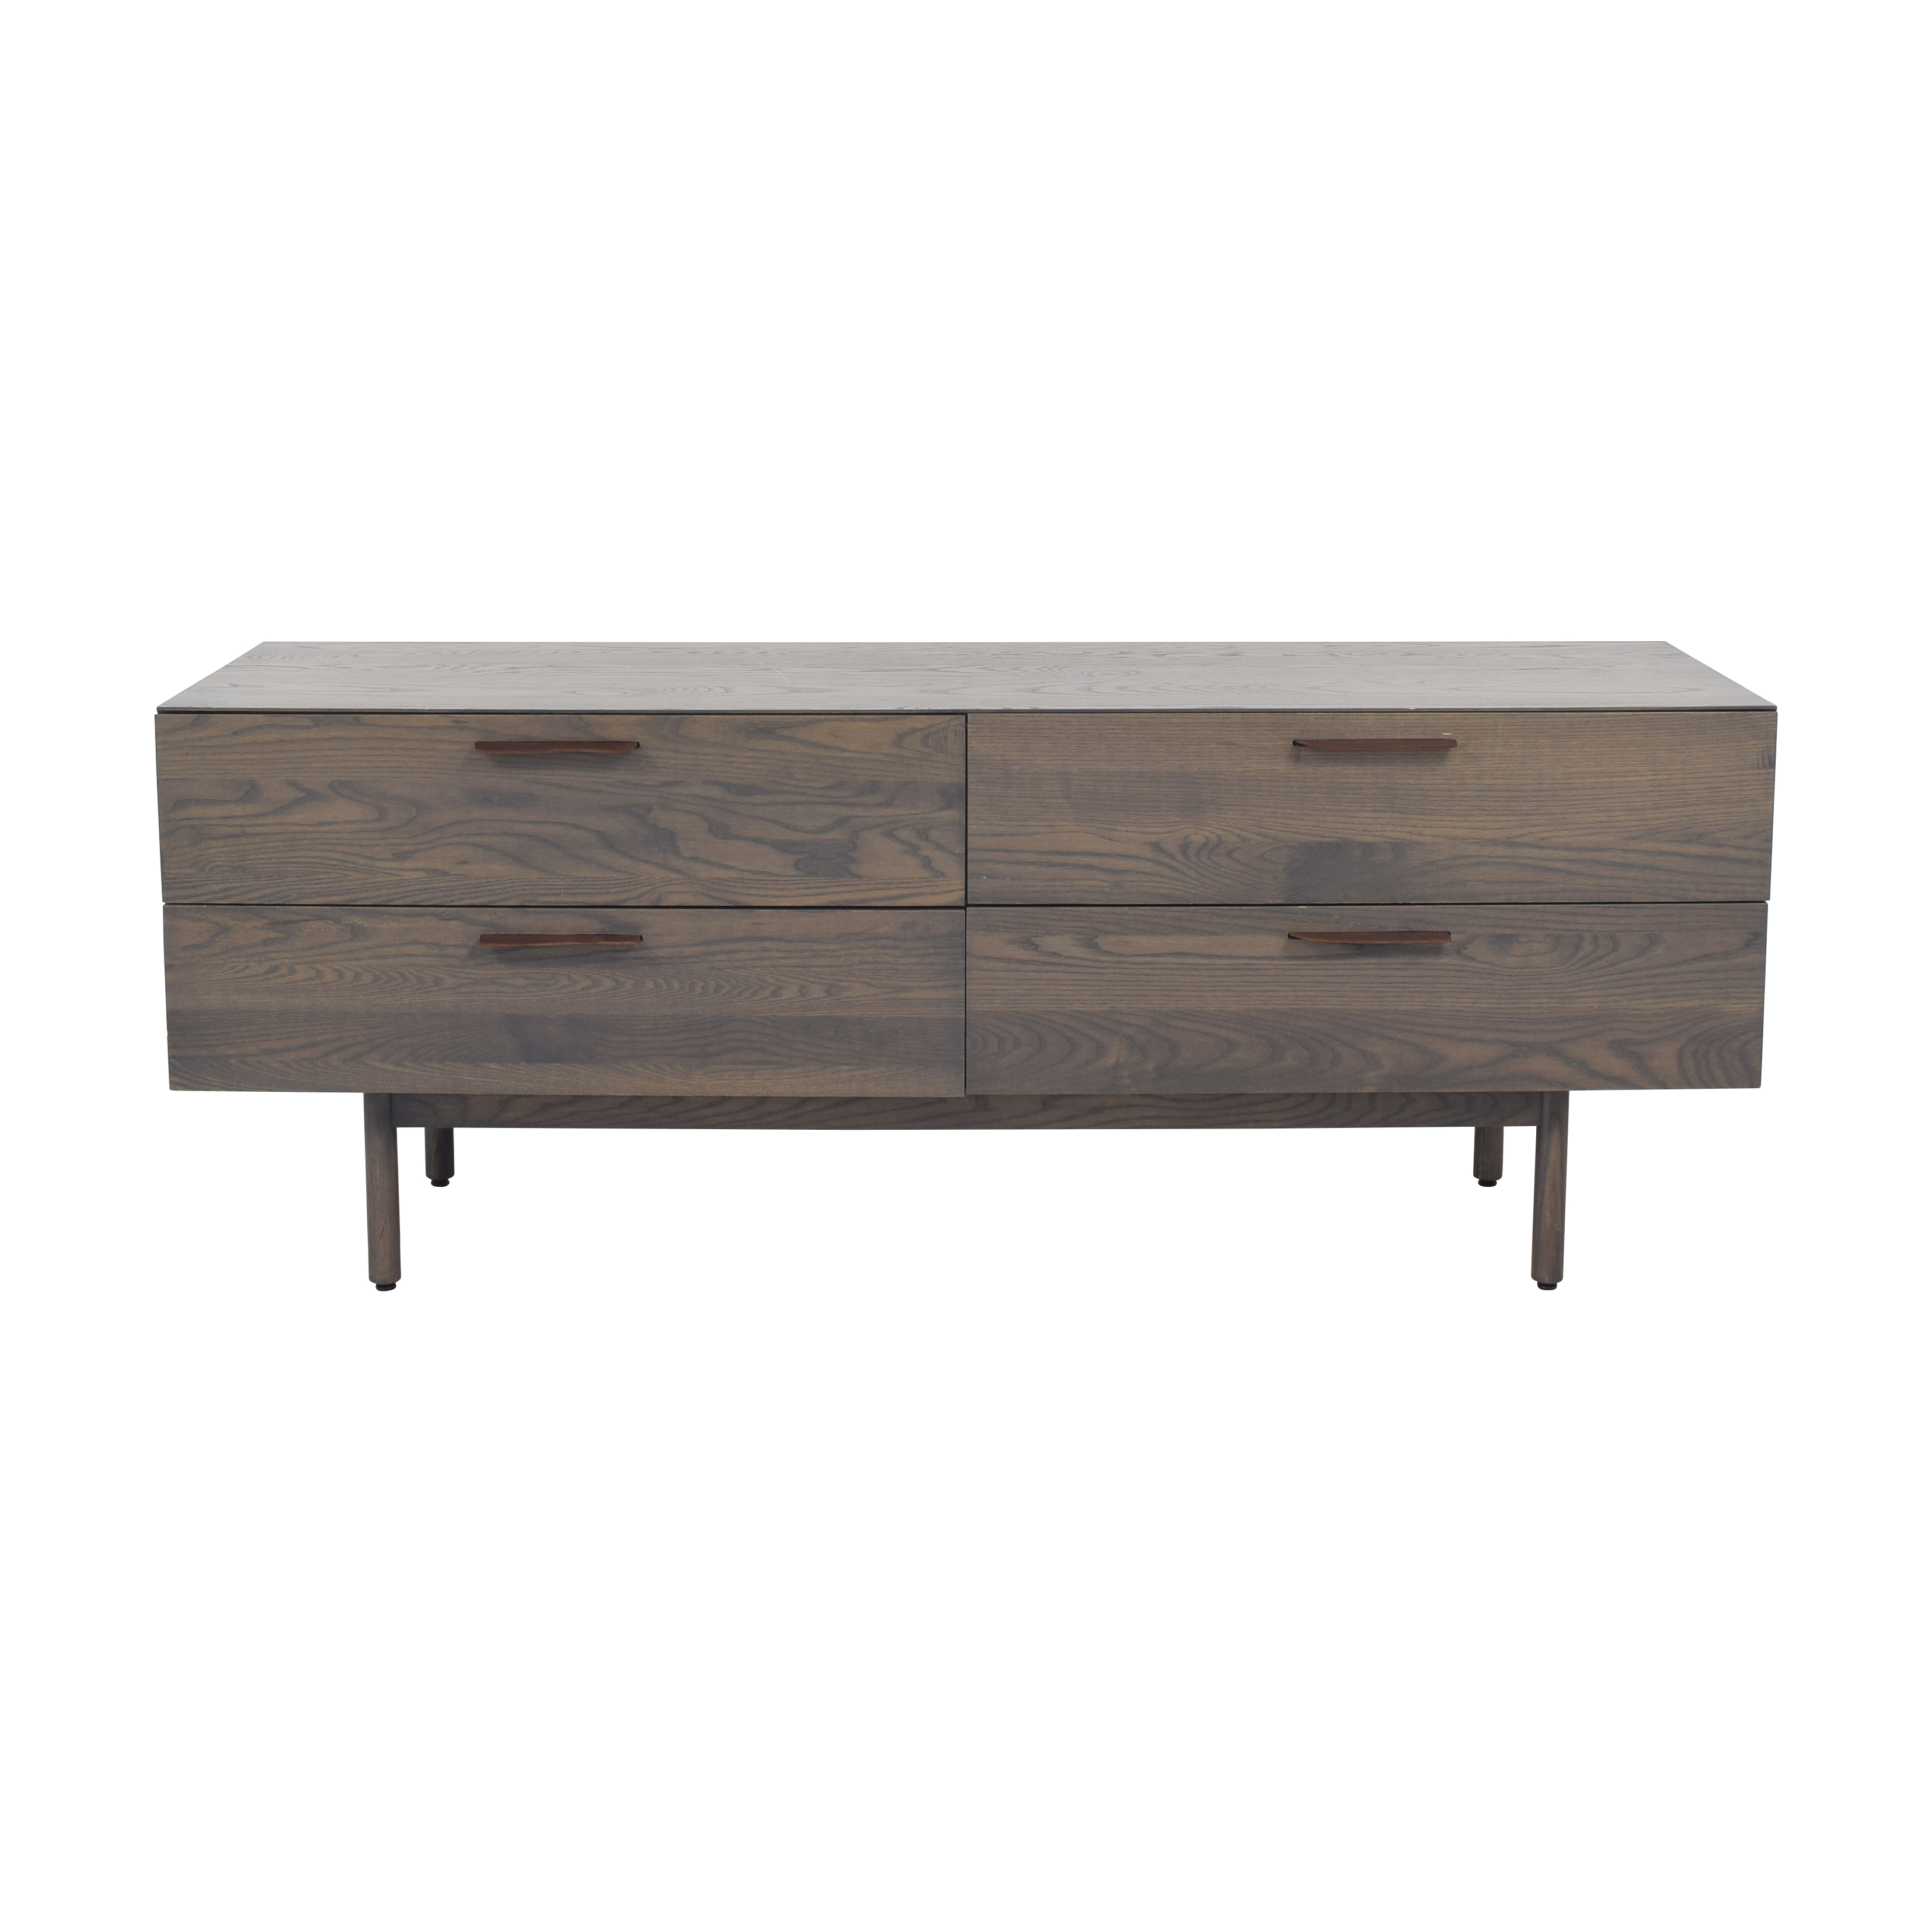 shop Blu Dot Shale 4 Drawer Dresser Blu Dot Dressers